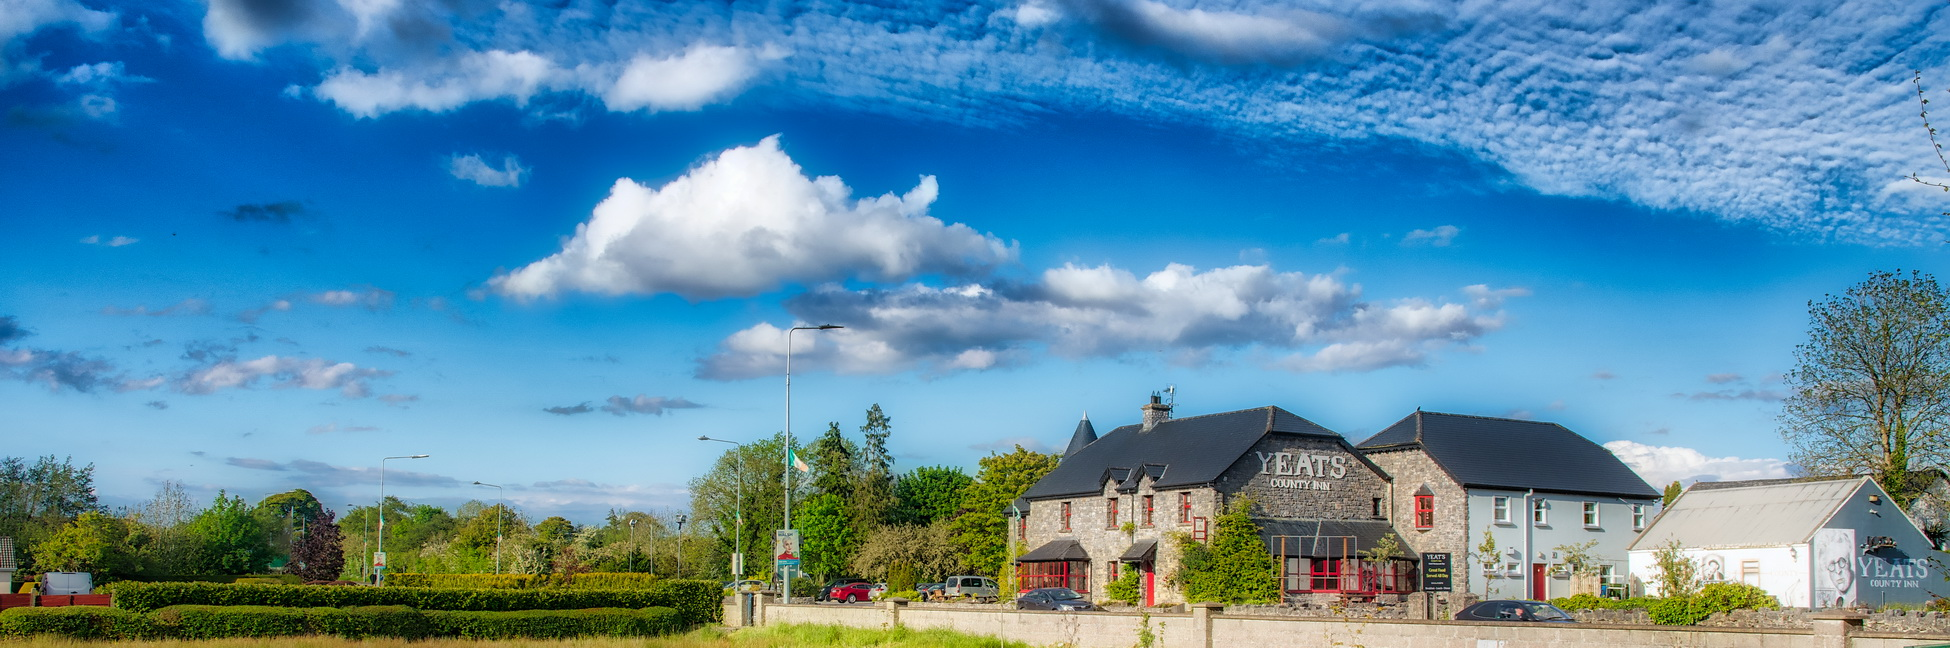 "photo ""Yeats country inn on background sunny day"" tags: landscape, old-time, architecture, Europe, clouds, sky, sunset, Ирландия, слайго"